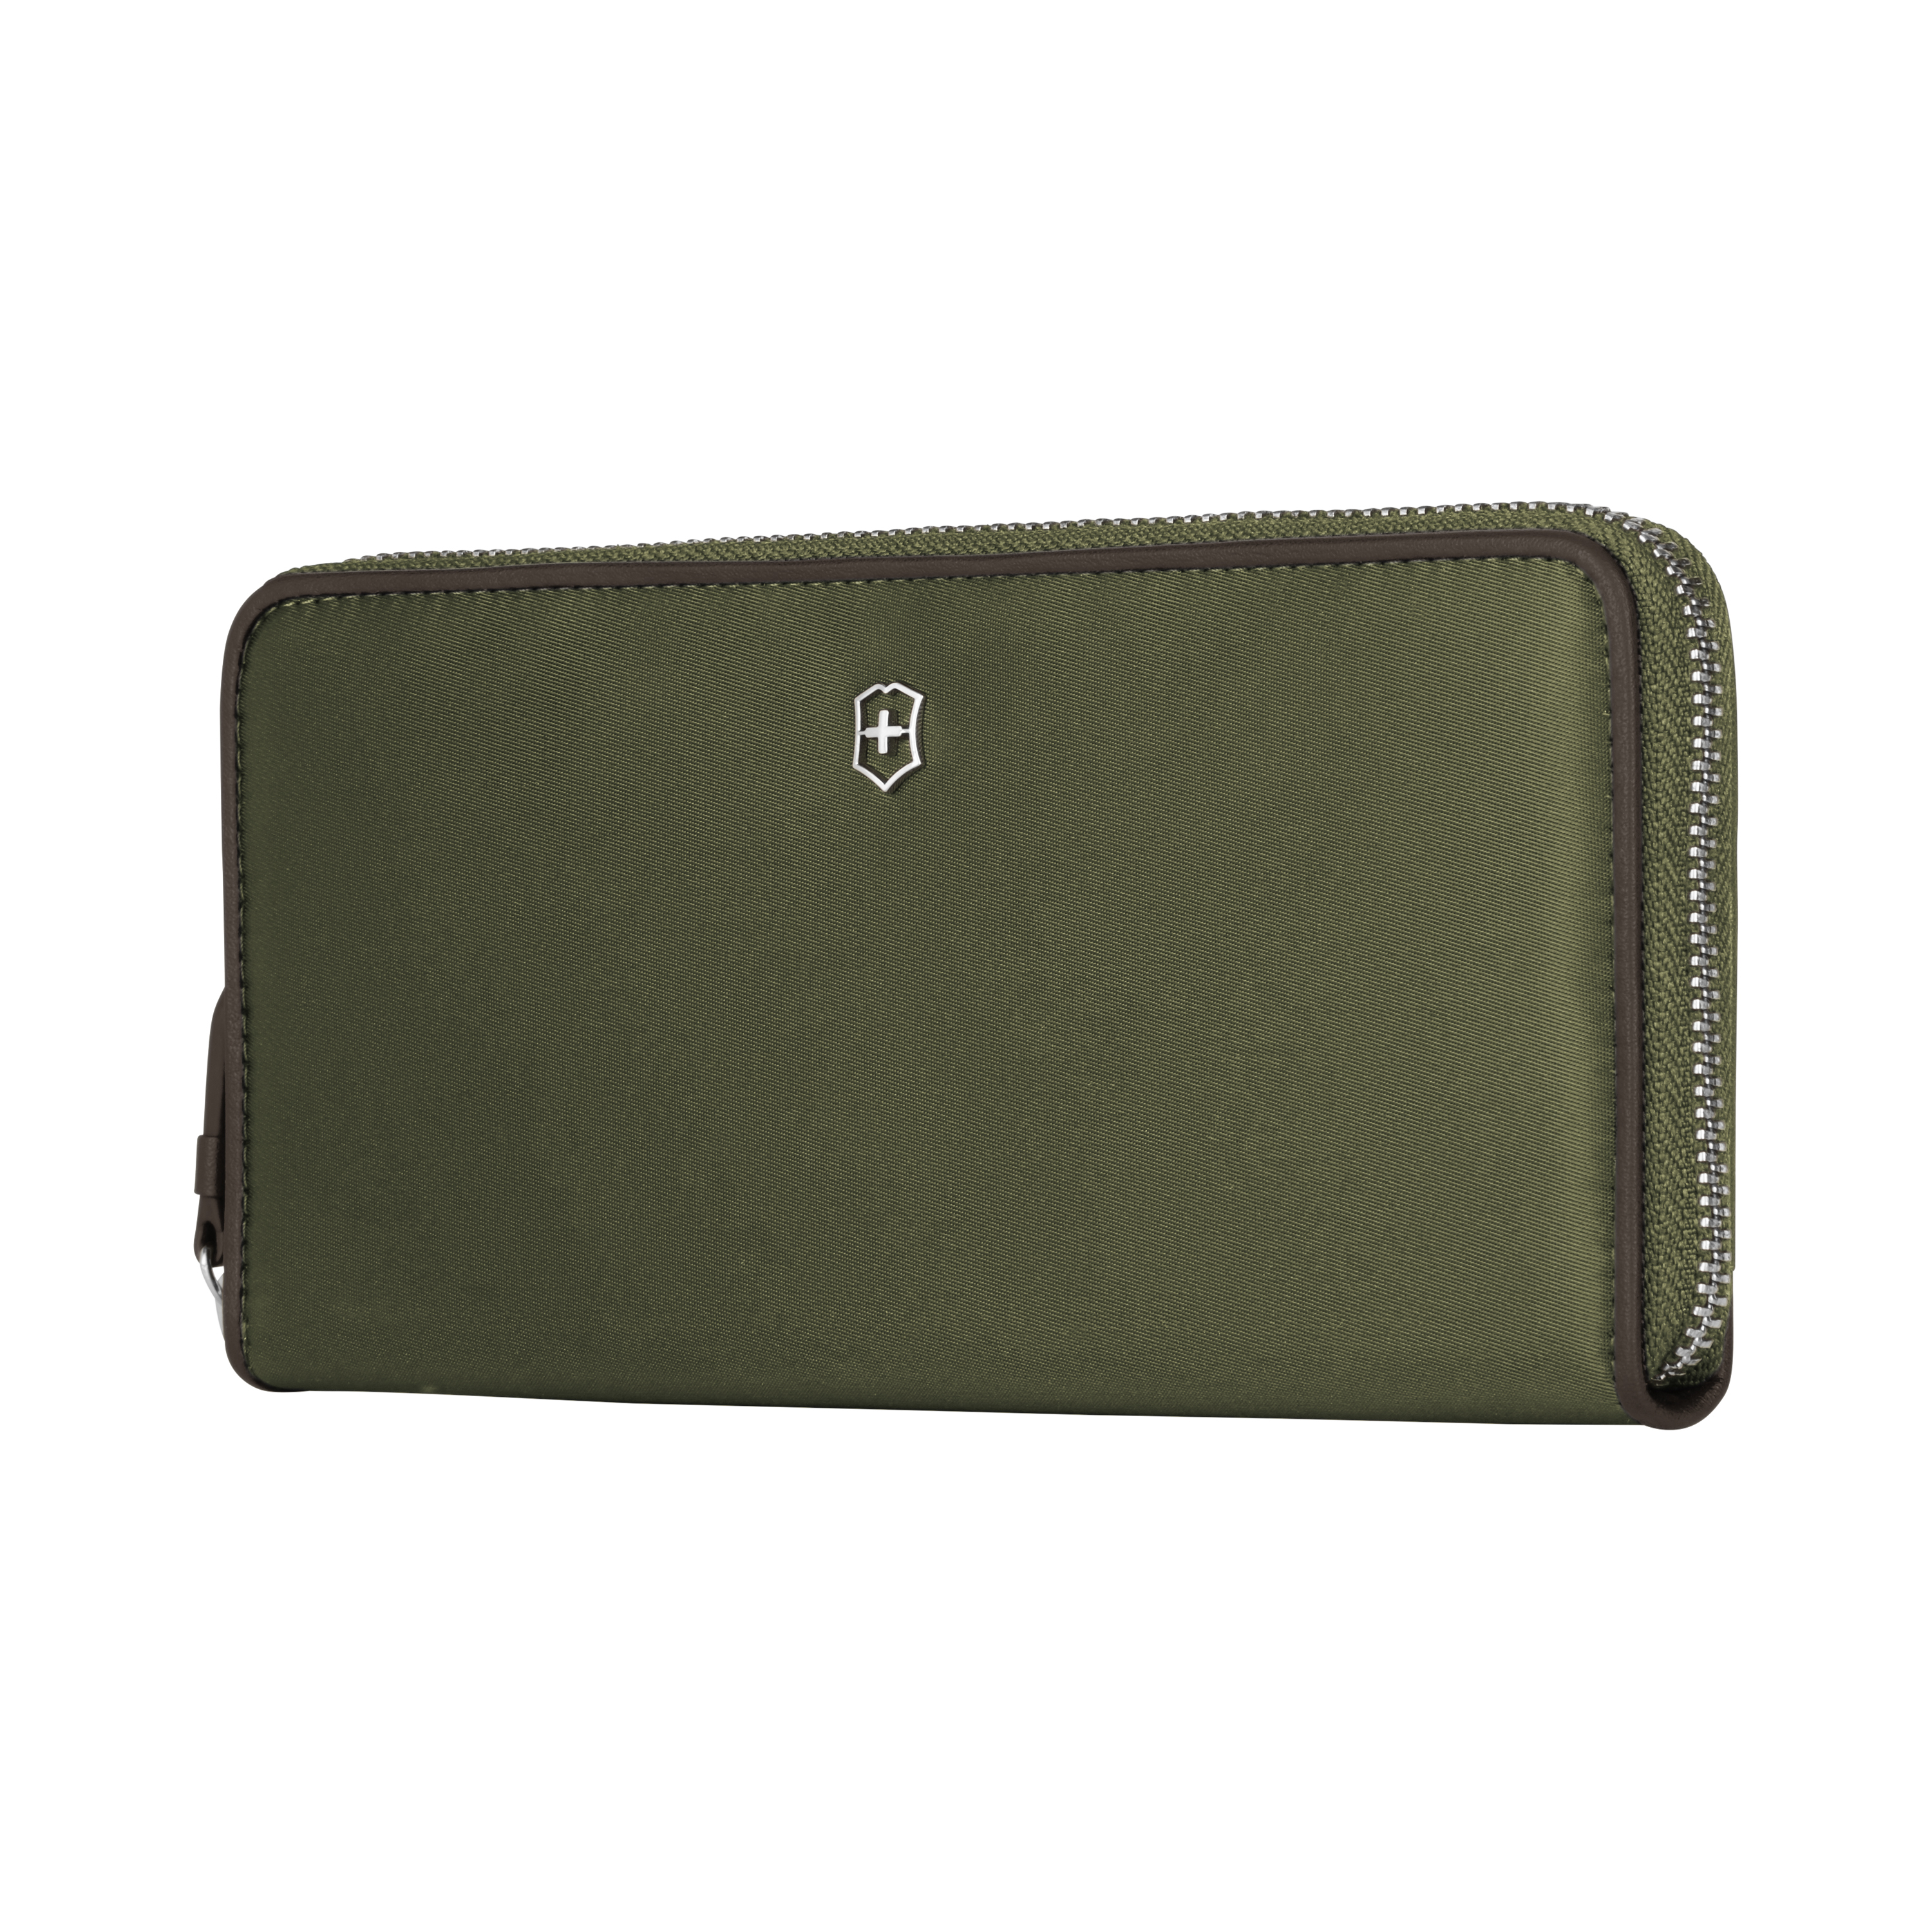 Victoria 2.0 Continental Wallet - Olive